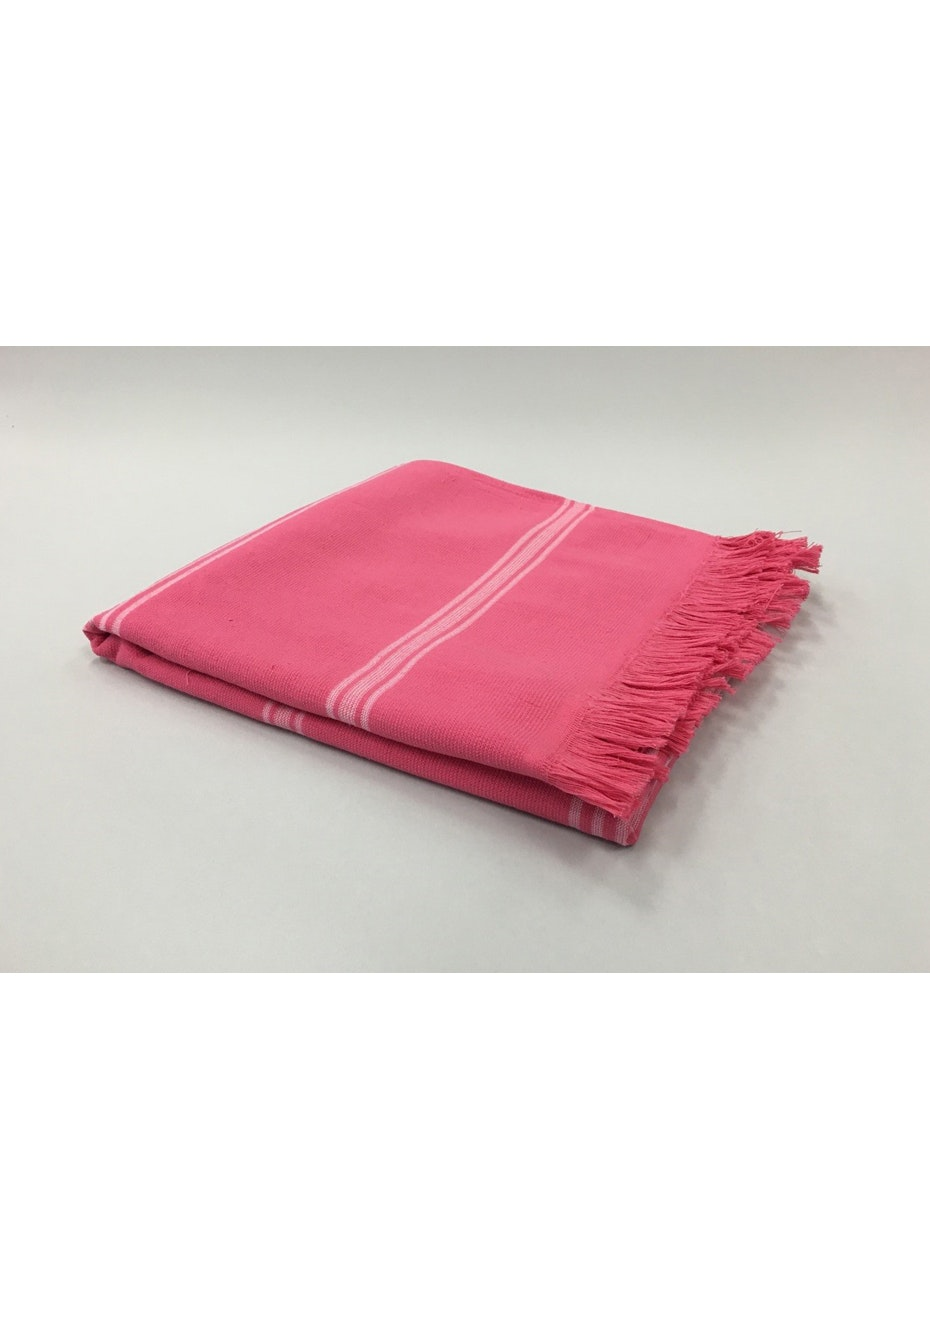 Pink Cotton Turkish Towel